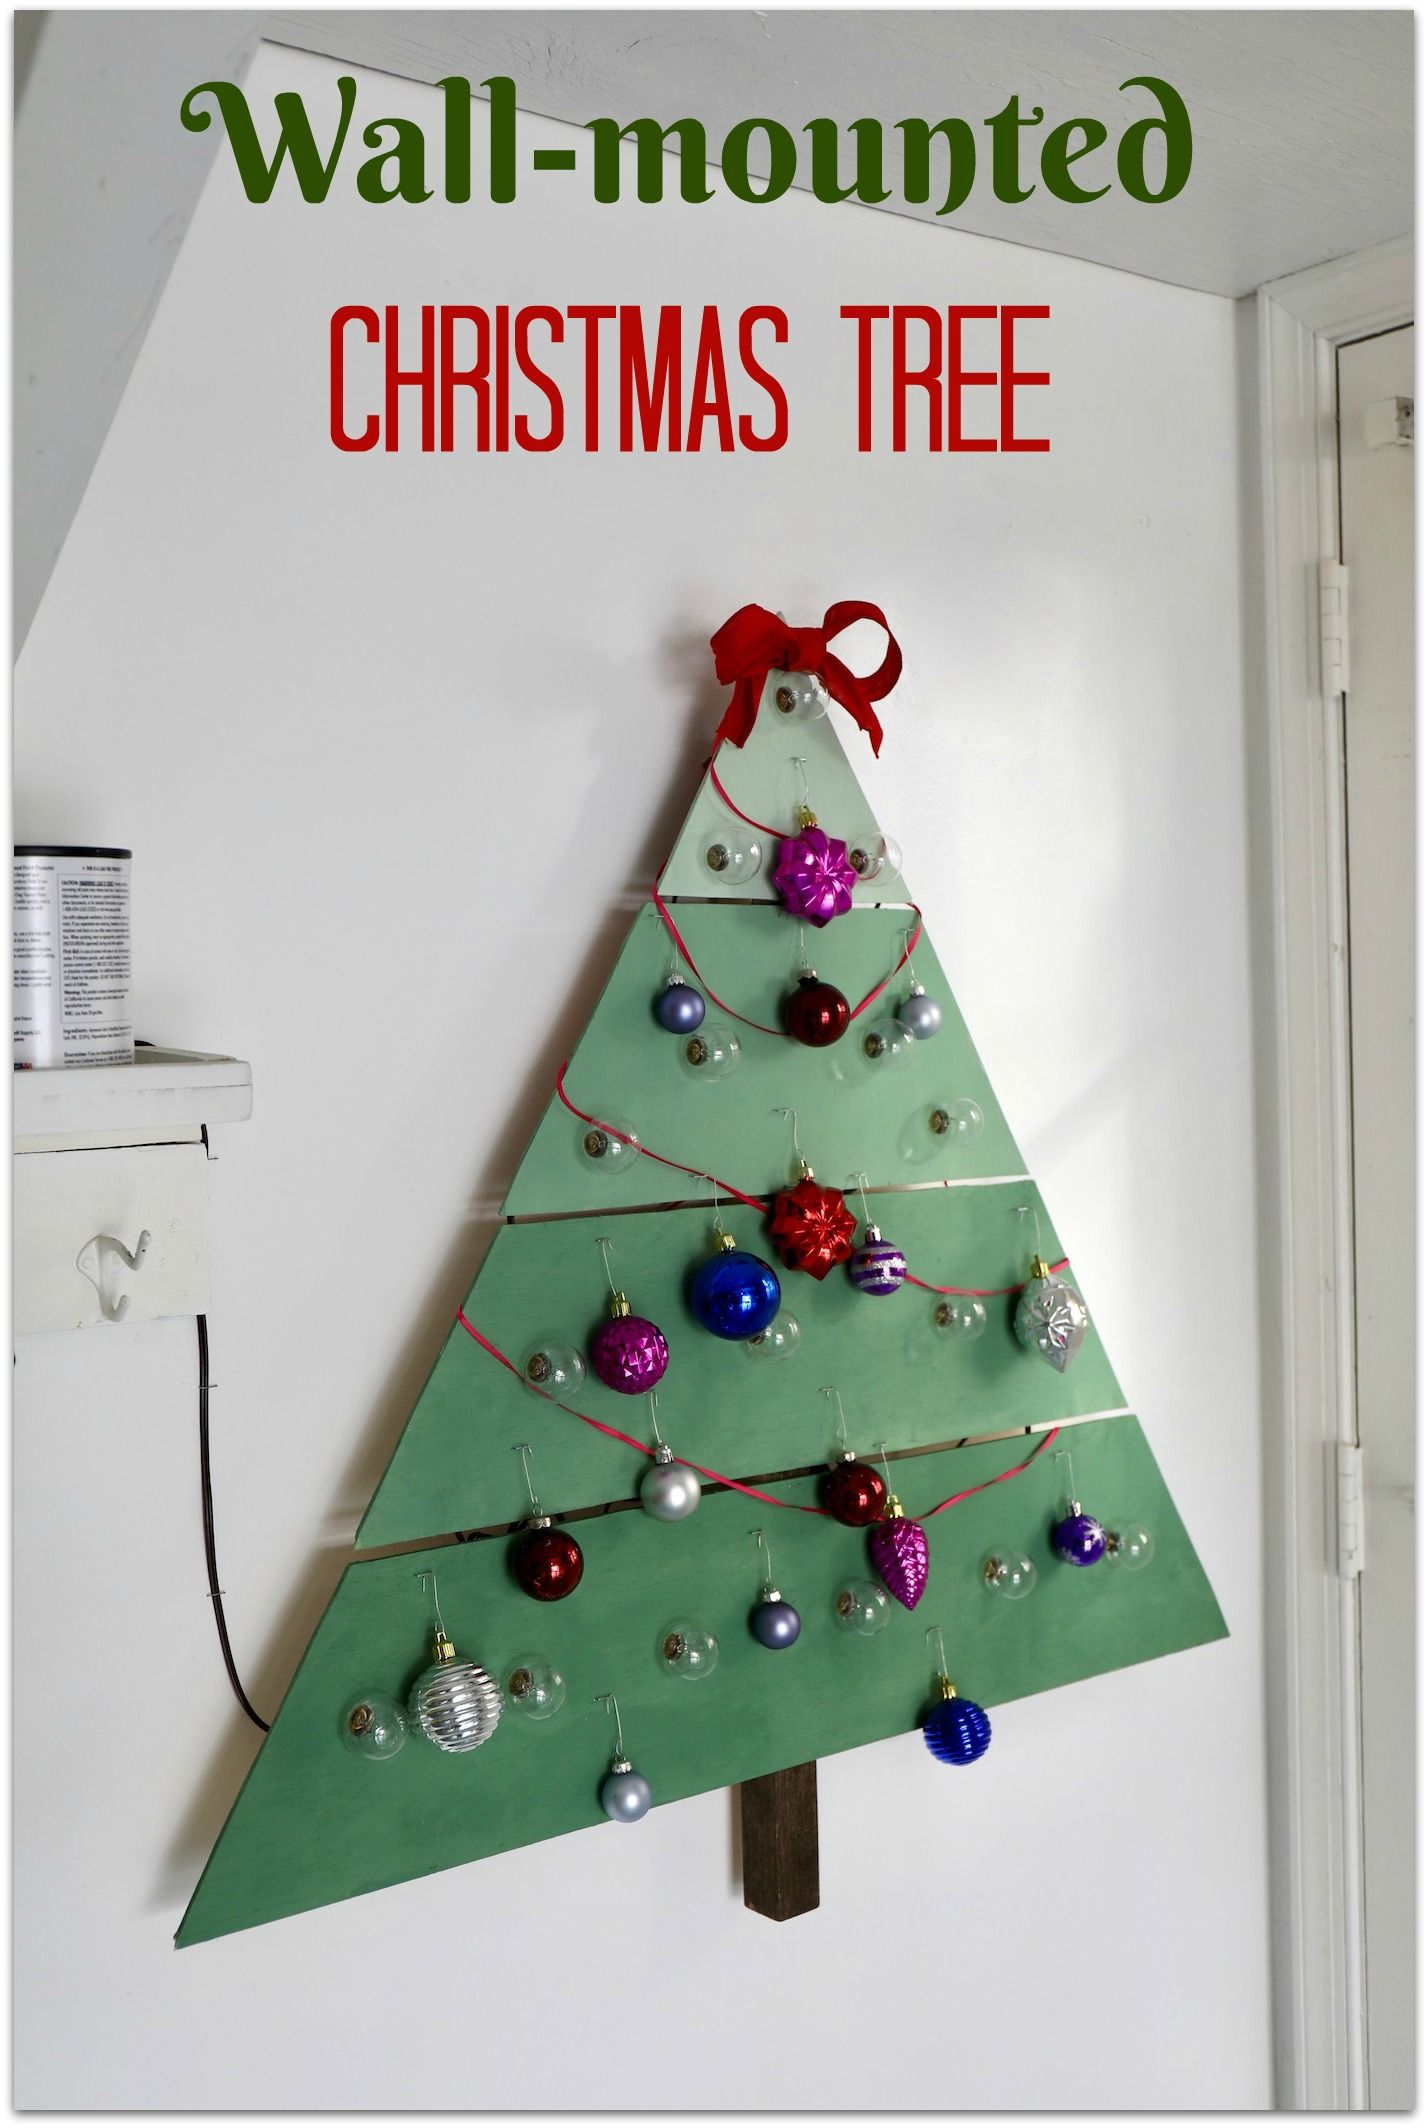 How To Make A Wall Mounted Christmas Tree Wall Mounted Christmas Tree Work Diy Wooden Christmas Trees